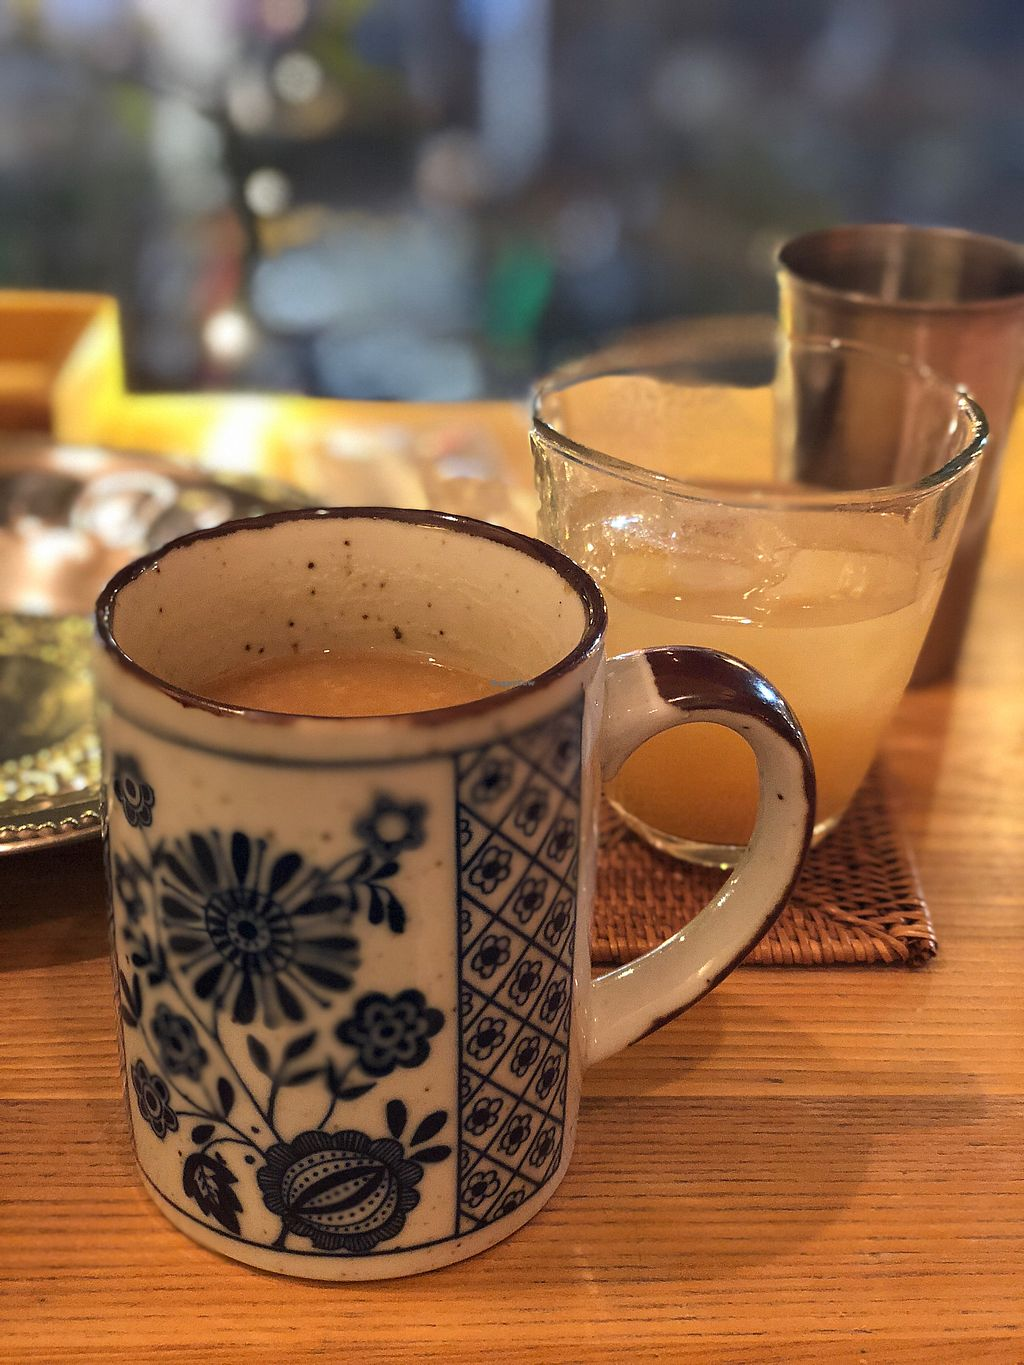 """Photo of Meunota  by <a href=""""/members/profile/CarlyHitchcock"""">CarlyHitchcock</a> <br/>Hot amazake and peach wine  <br/> December 22, 2017  - <a href='/contact/abuse/image/21068/338076'>Report</a>"""